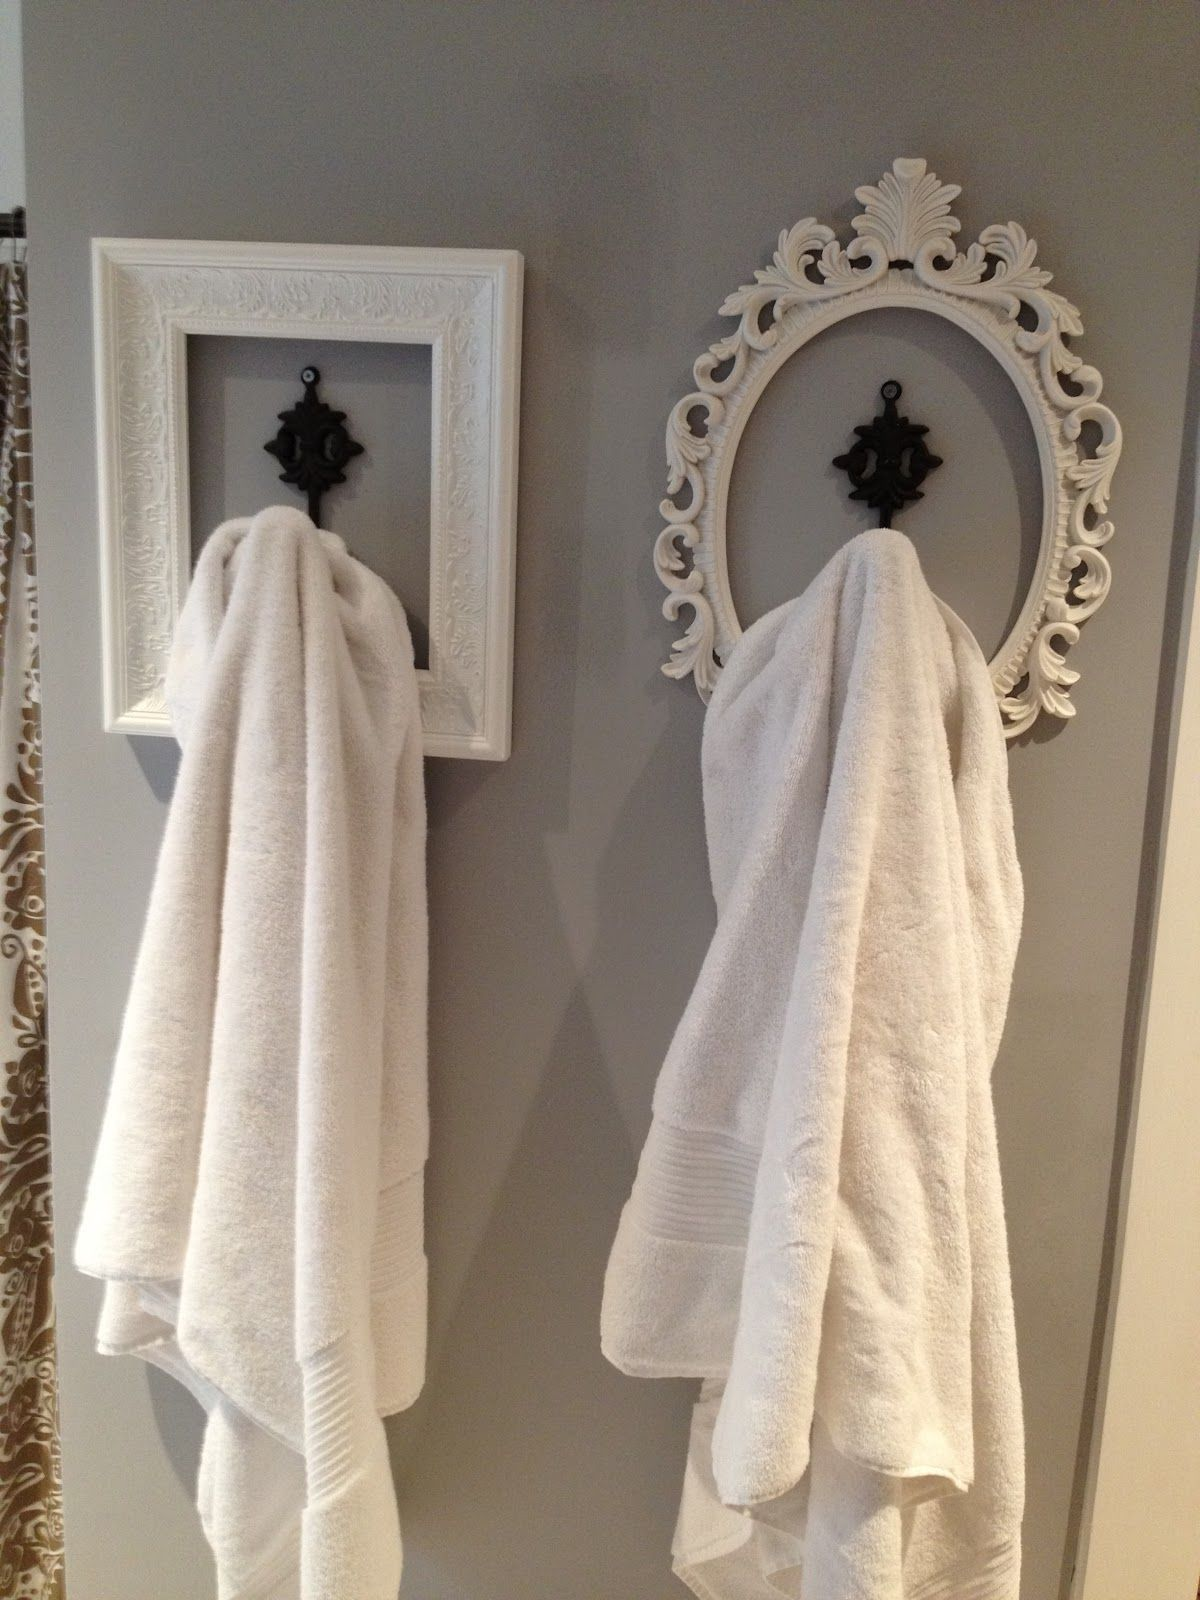 Displaying bathroom towels ideas - Hang Your Robe Towels Etc Fun Used Old Frames Spray Paint Cute Idea For Kids Bathroom